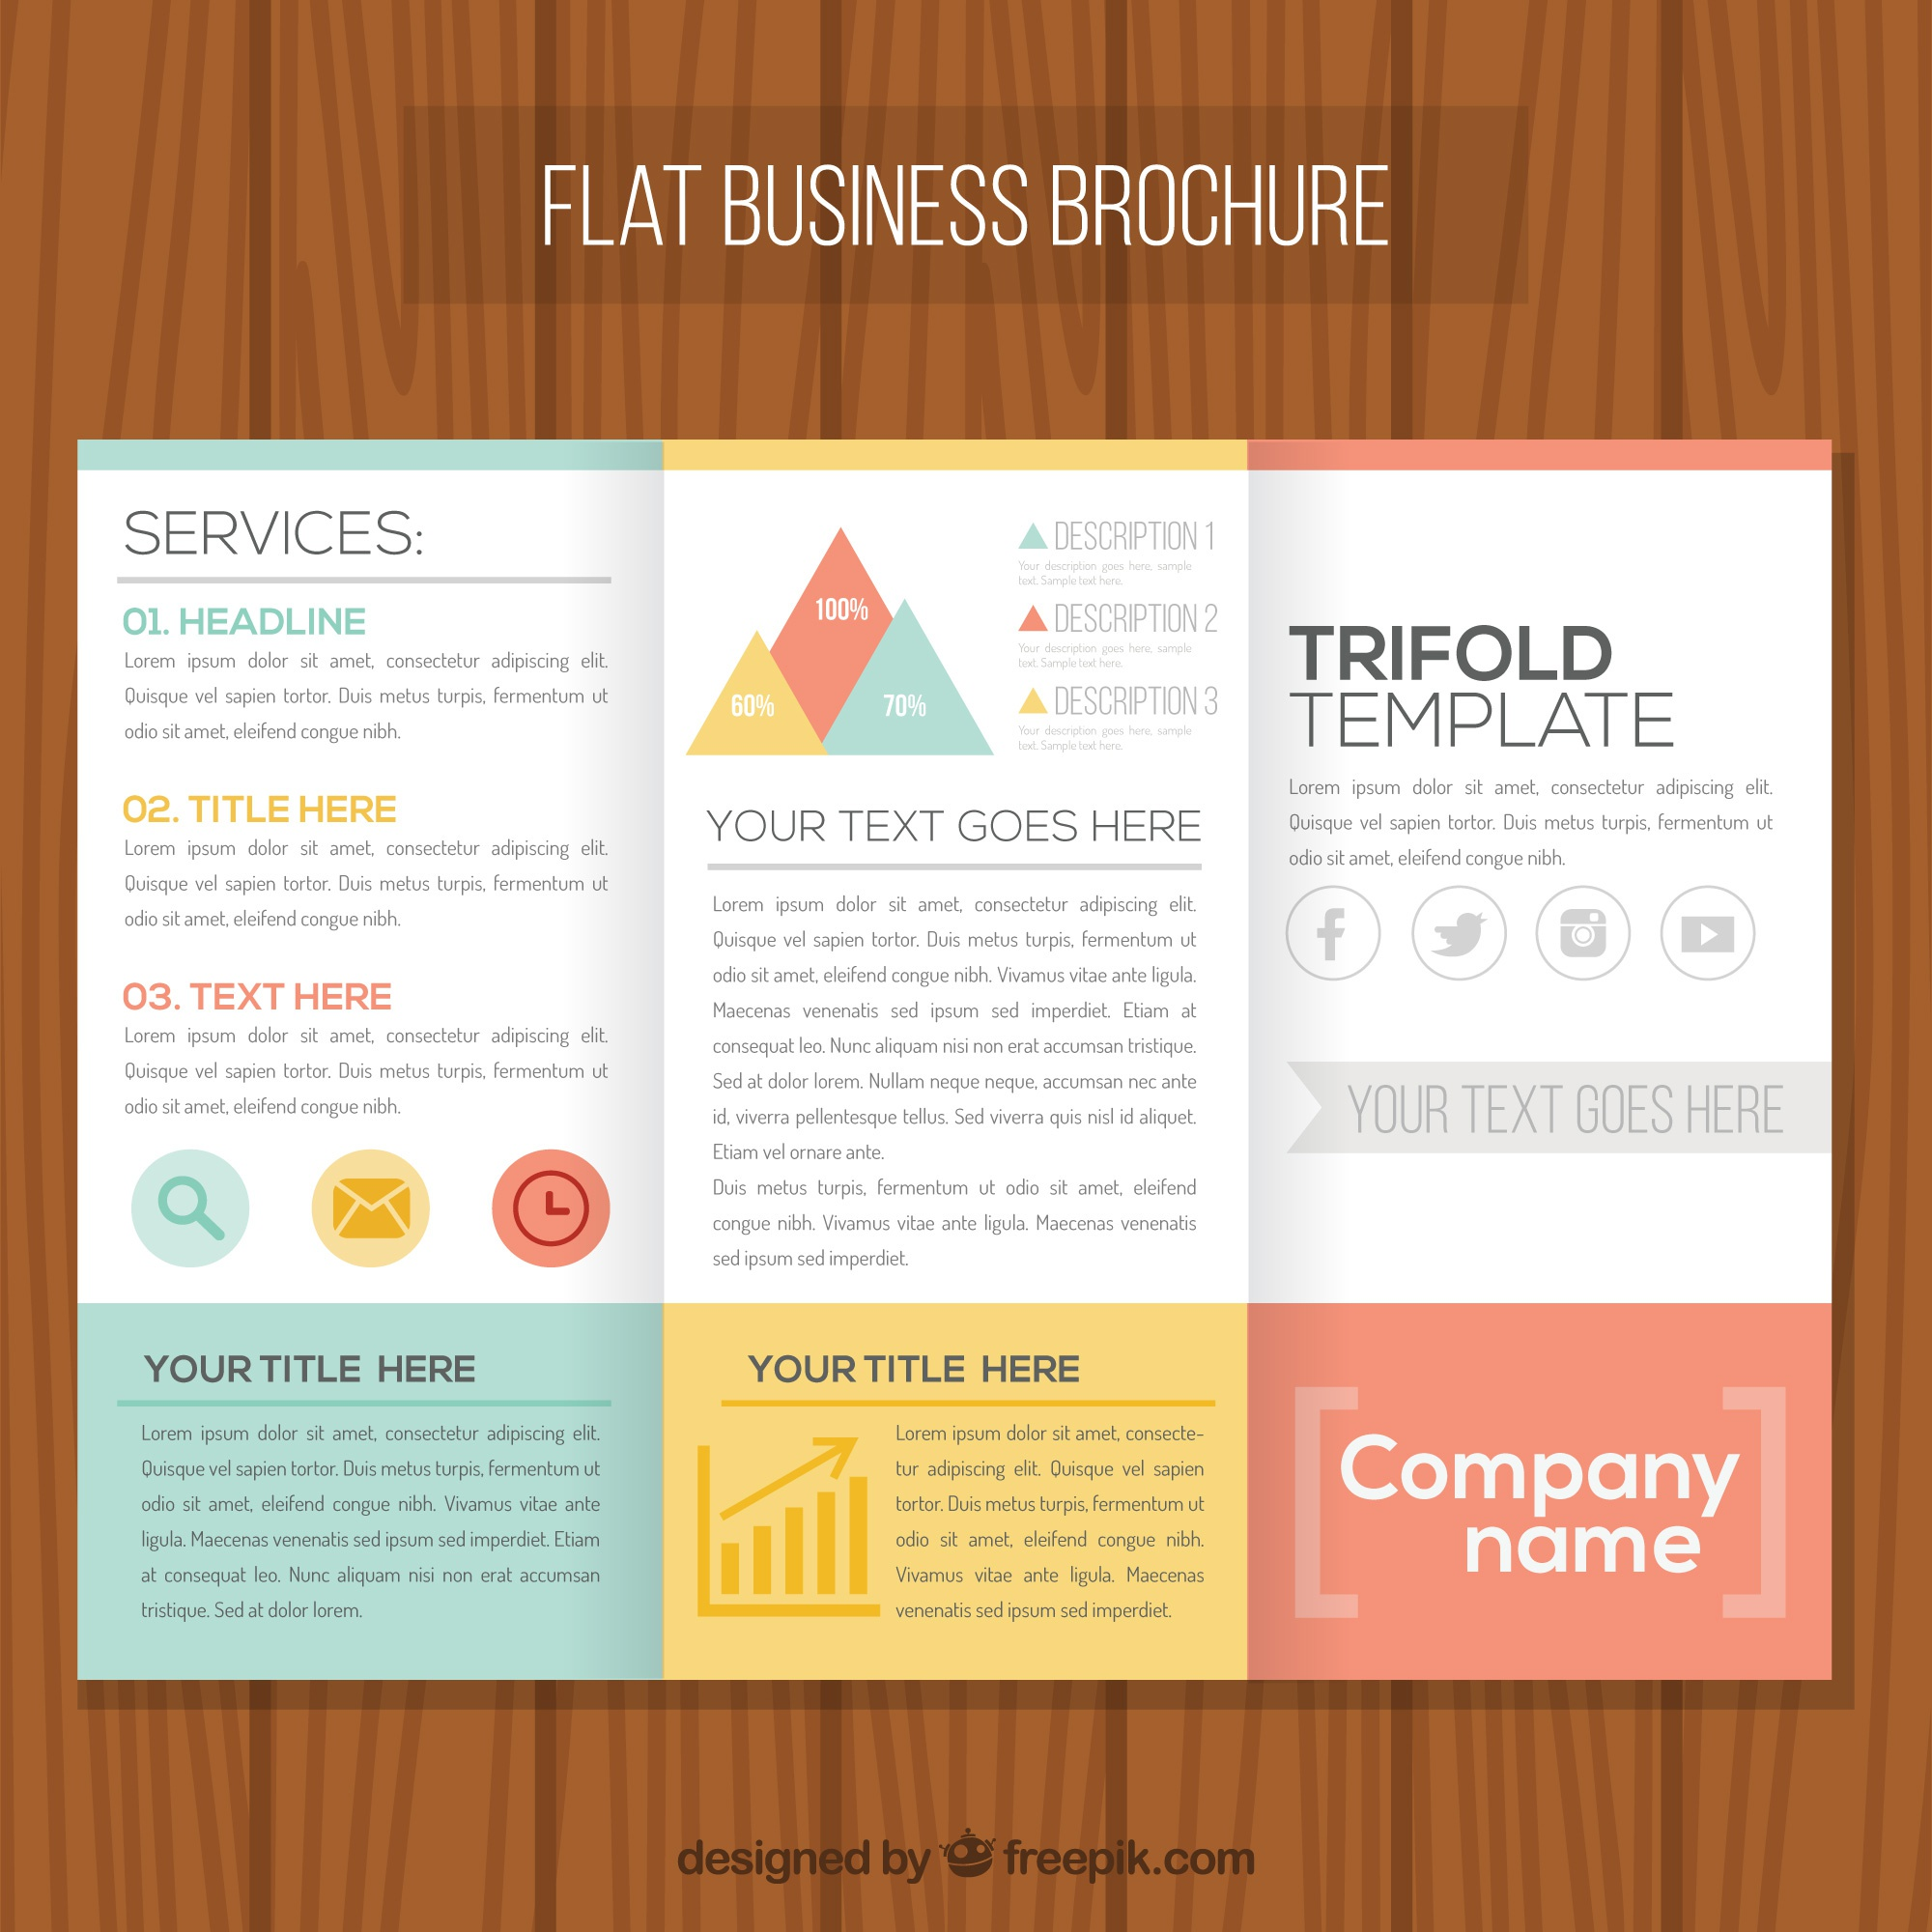 Flat business brochure with colored shapes